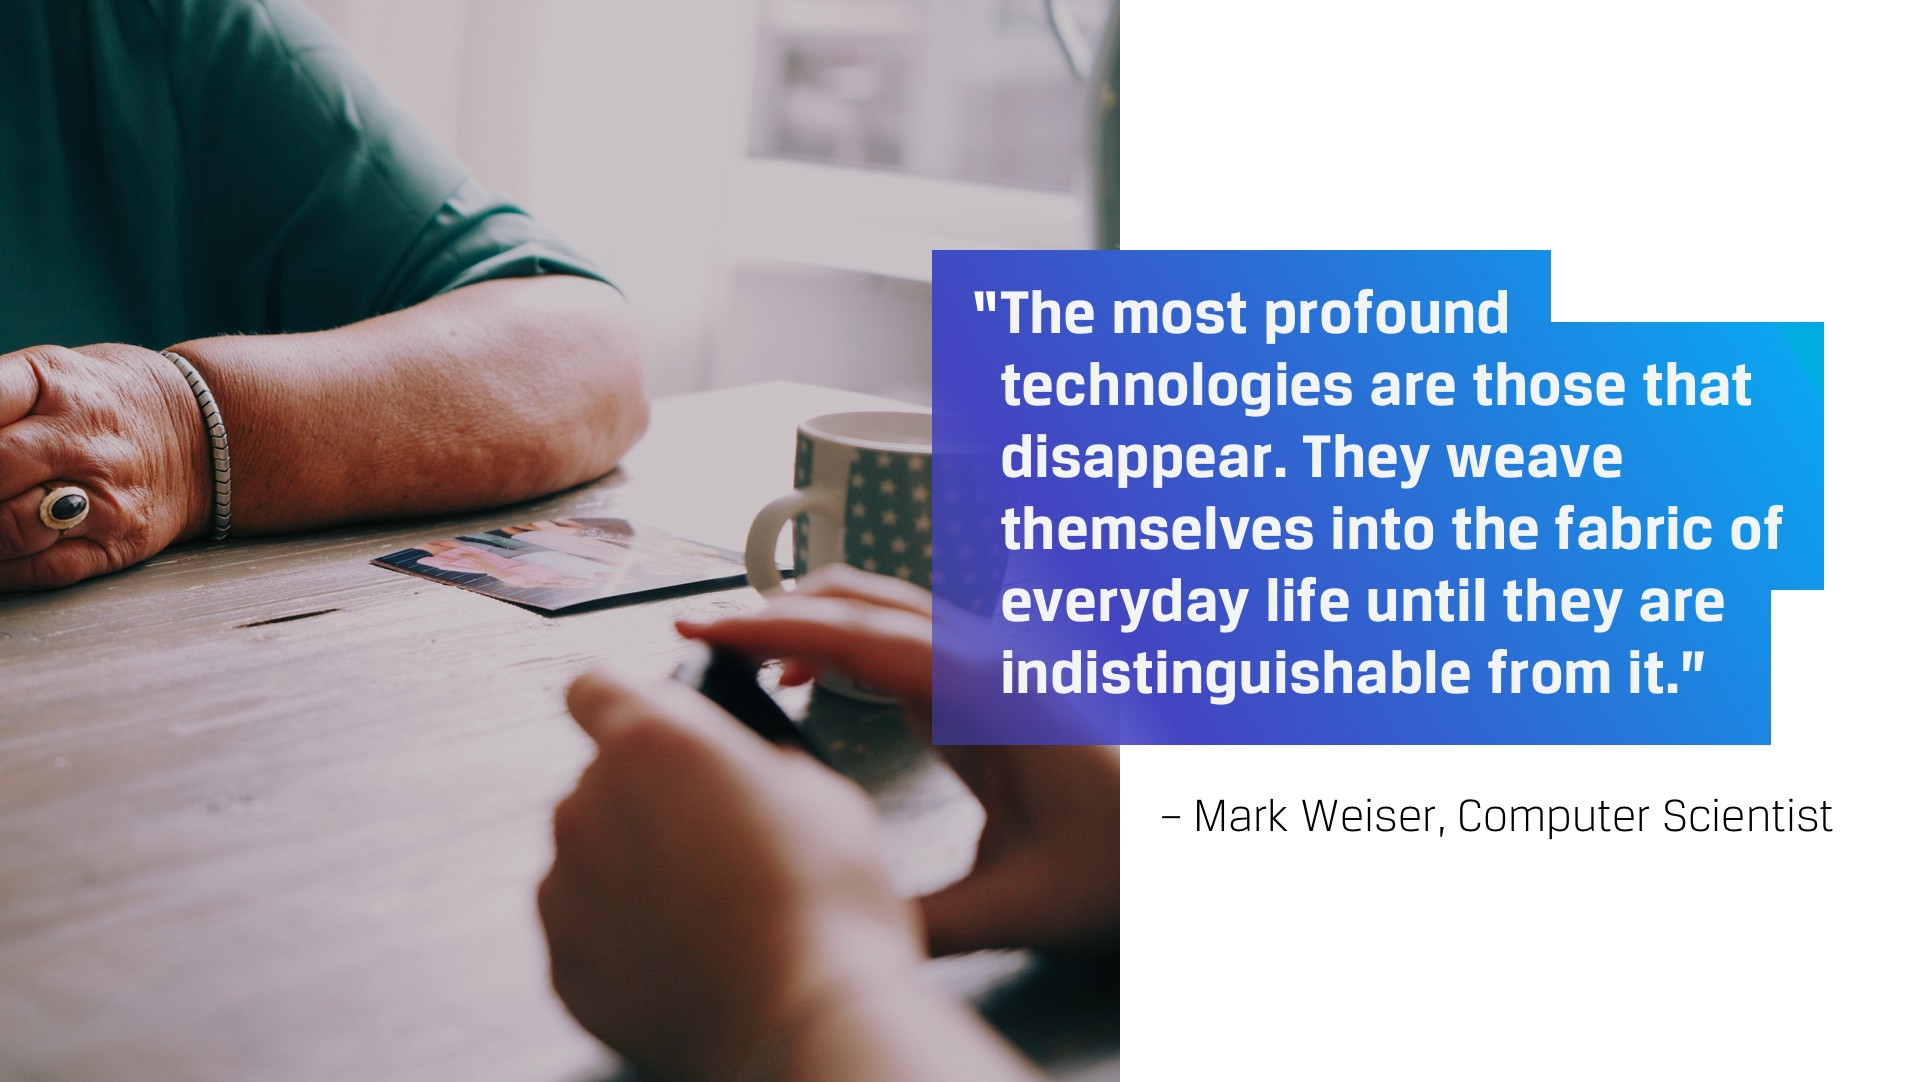 The most profound technologies are those that disappear. They weave themselves in the fabric of everyday life. — Mark Weiser